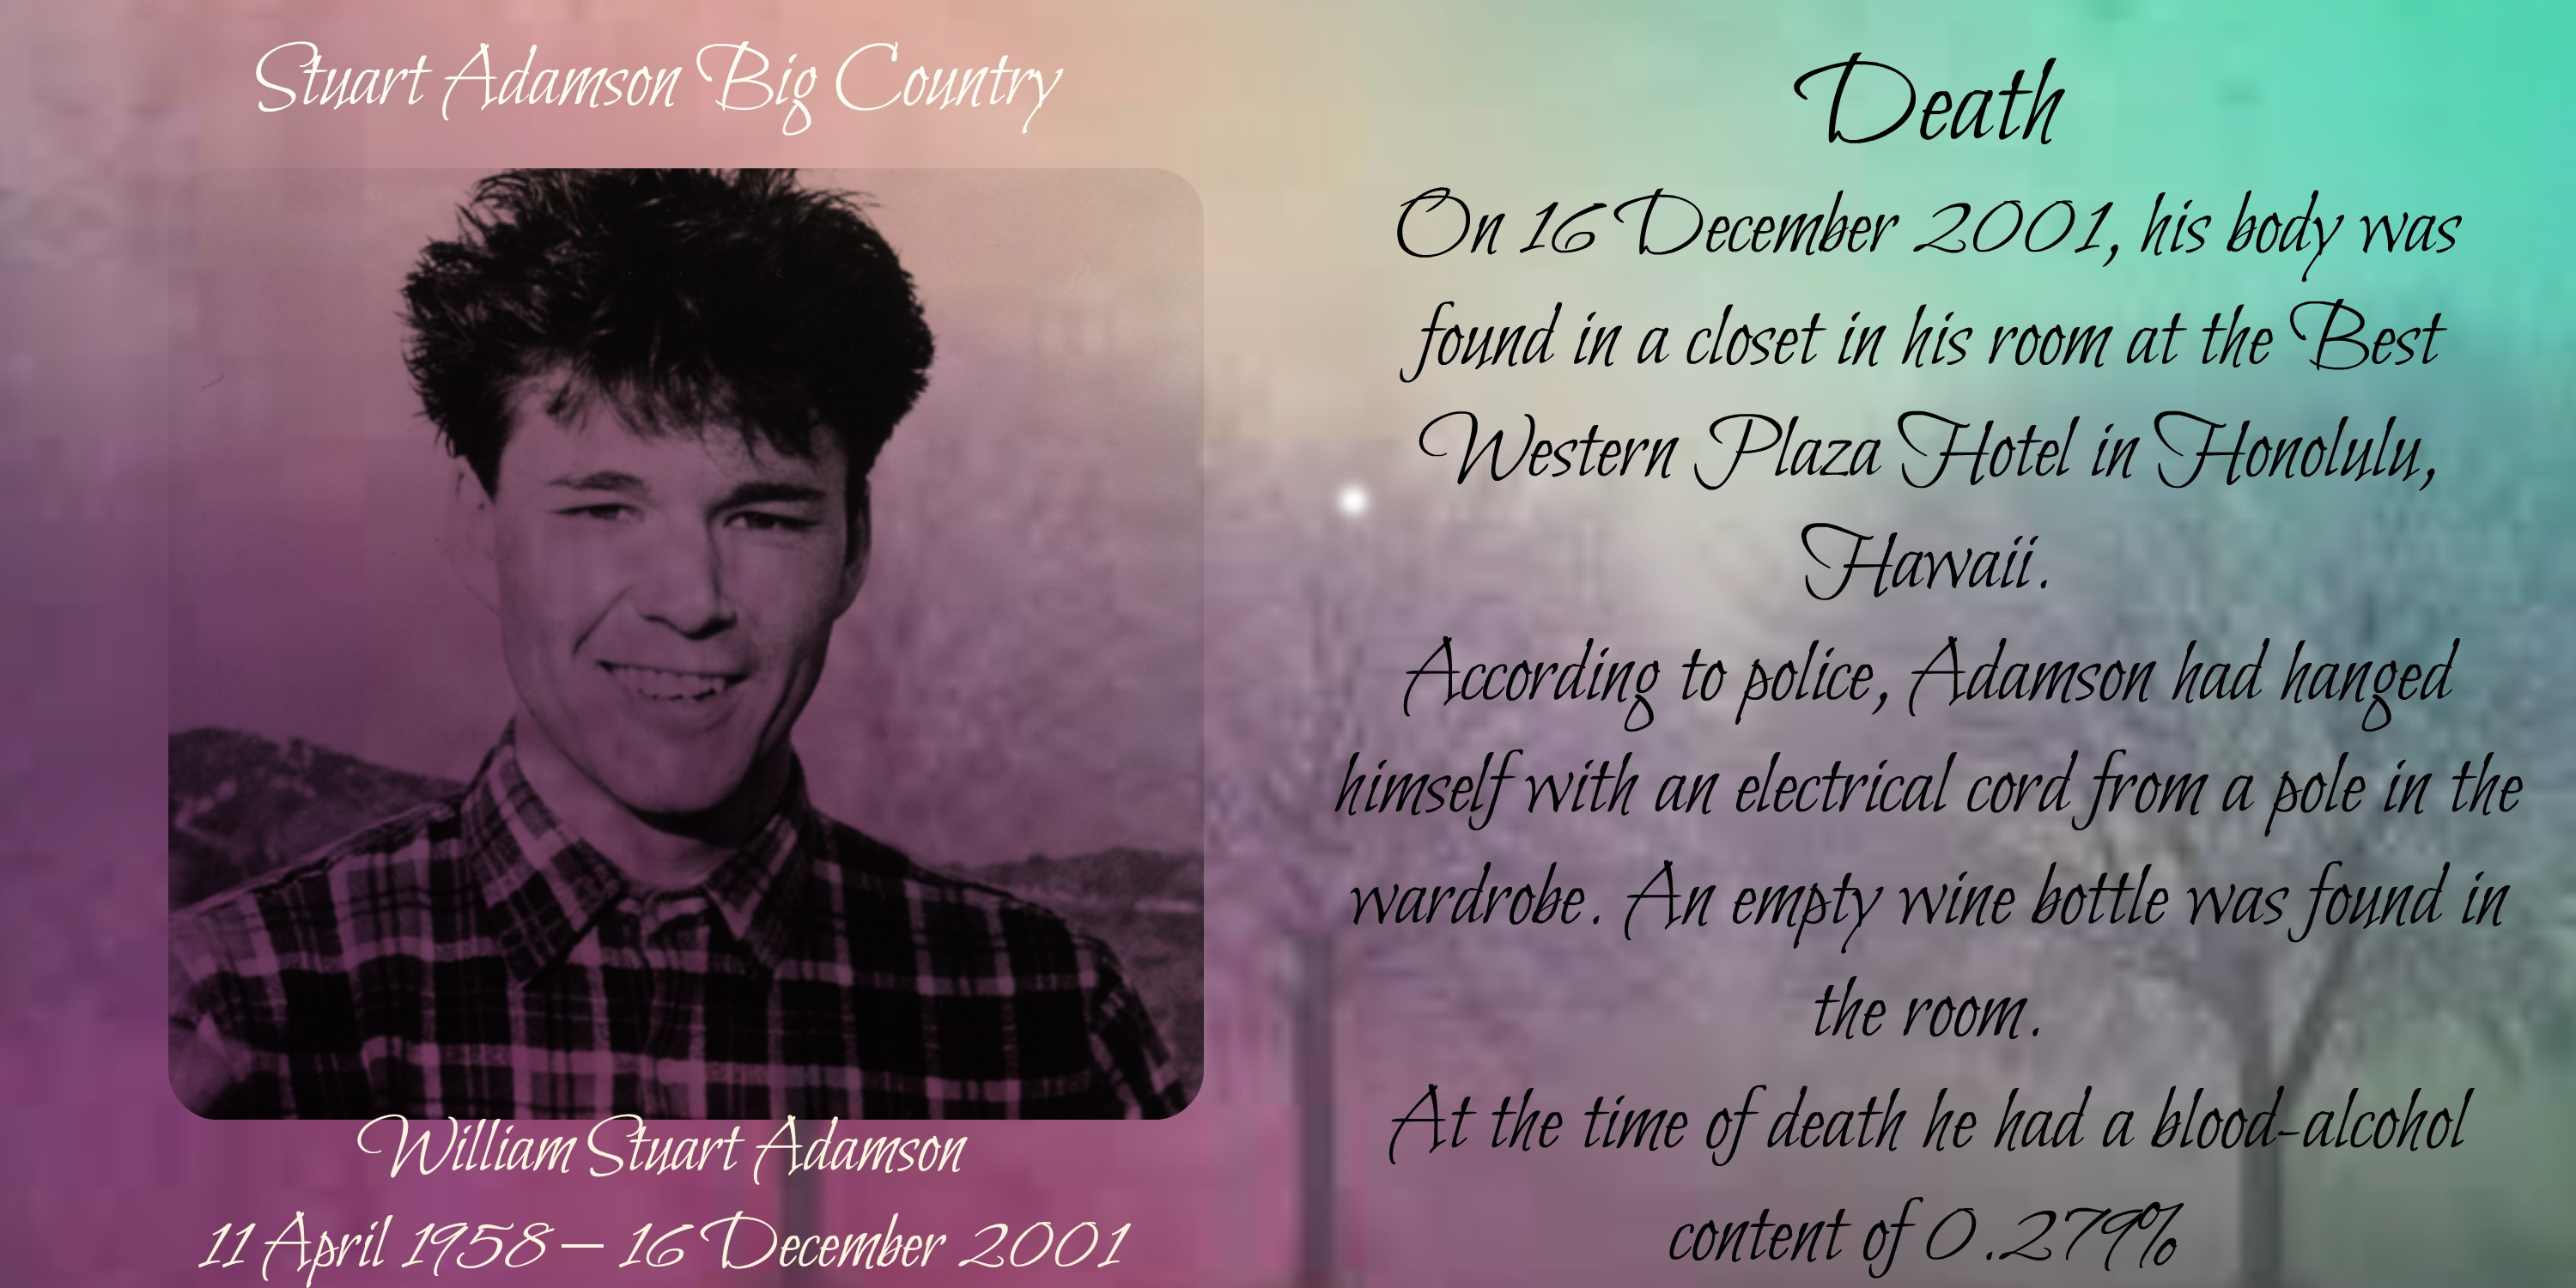 William Stuart Adamson Big country 2